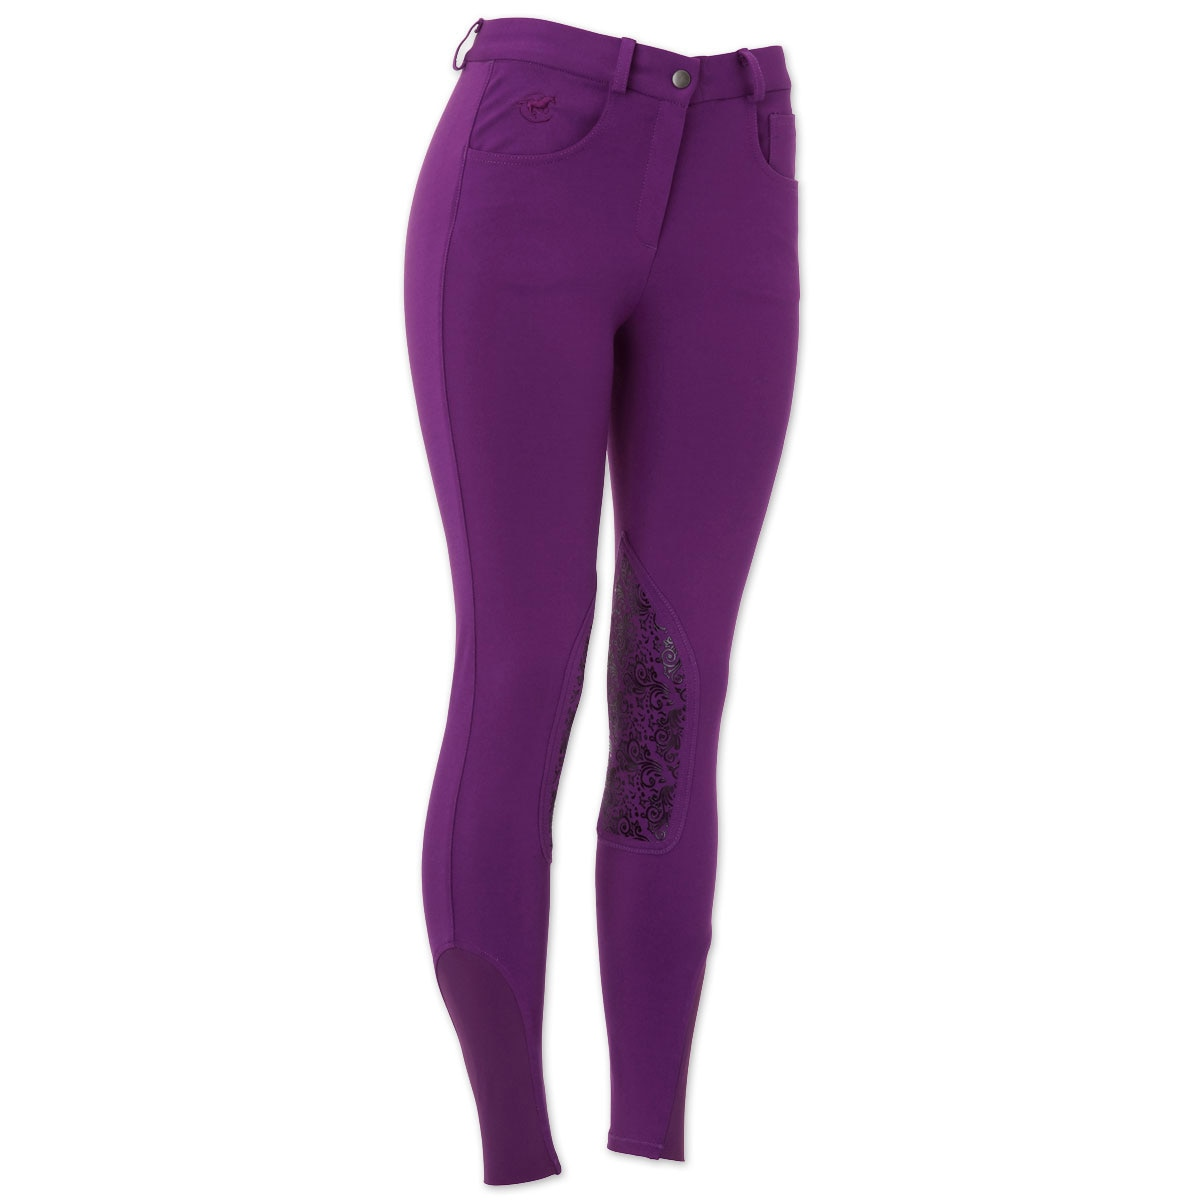 Piper Knit Breeches by SmartPak - Mid Rise Knee Patch - Sale!